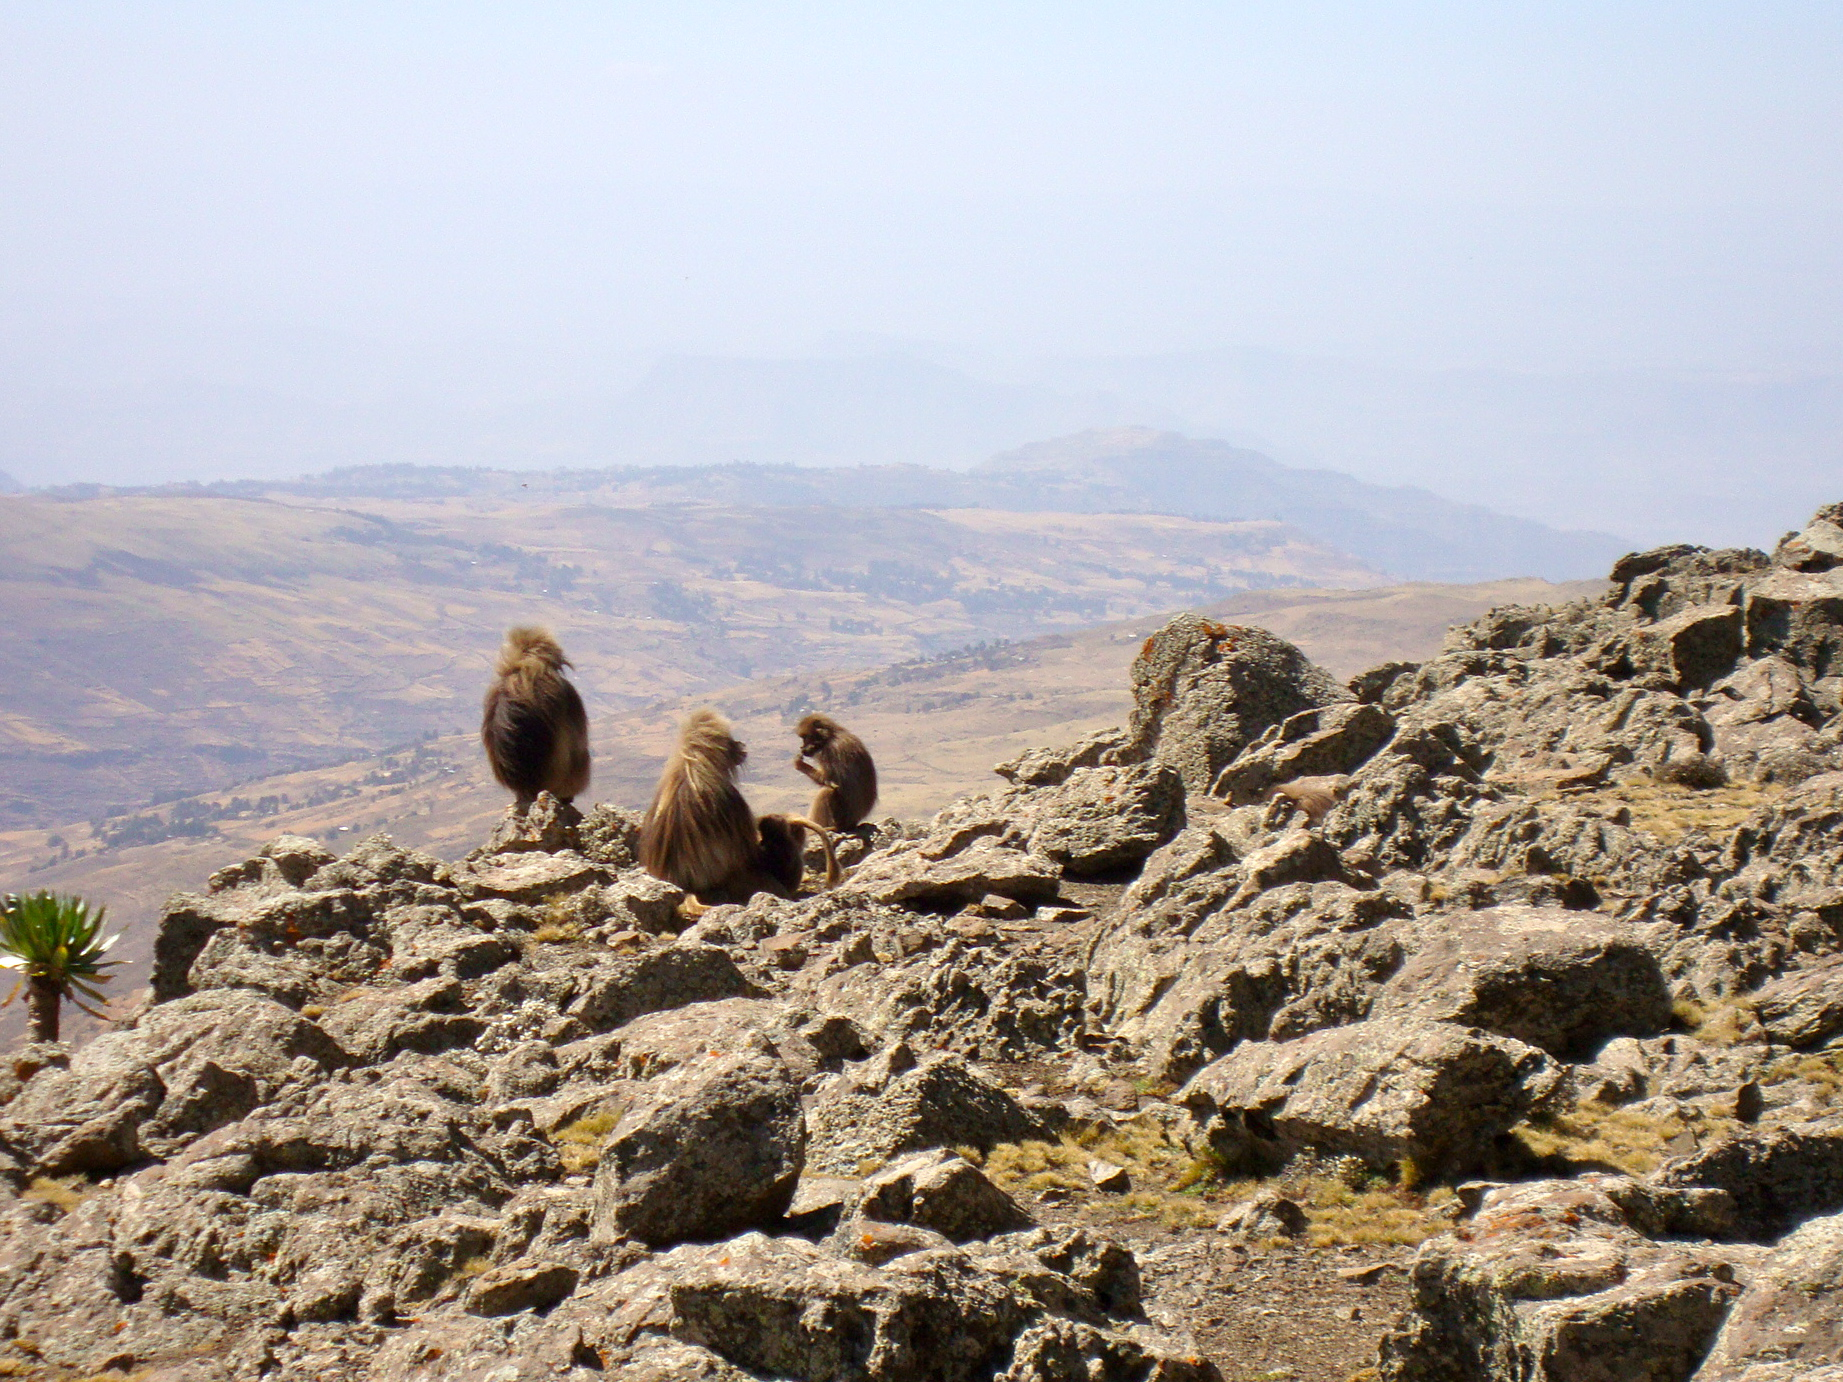 Buhawit Pass, Simien Mountains